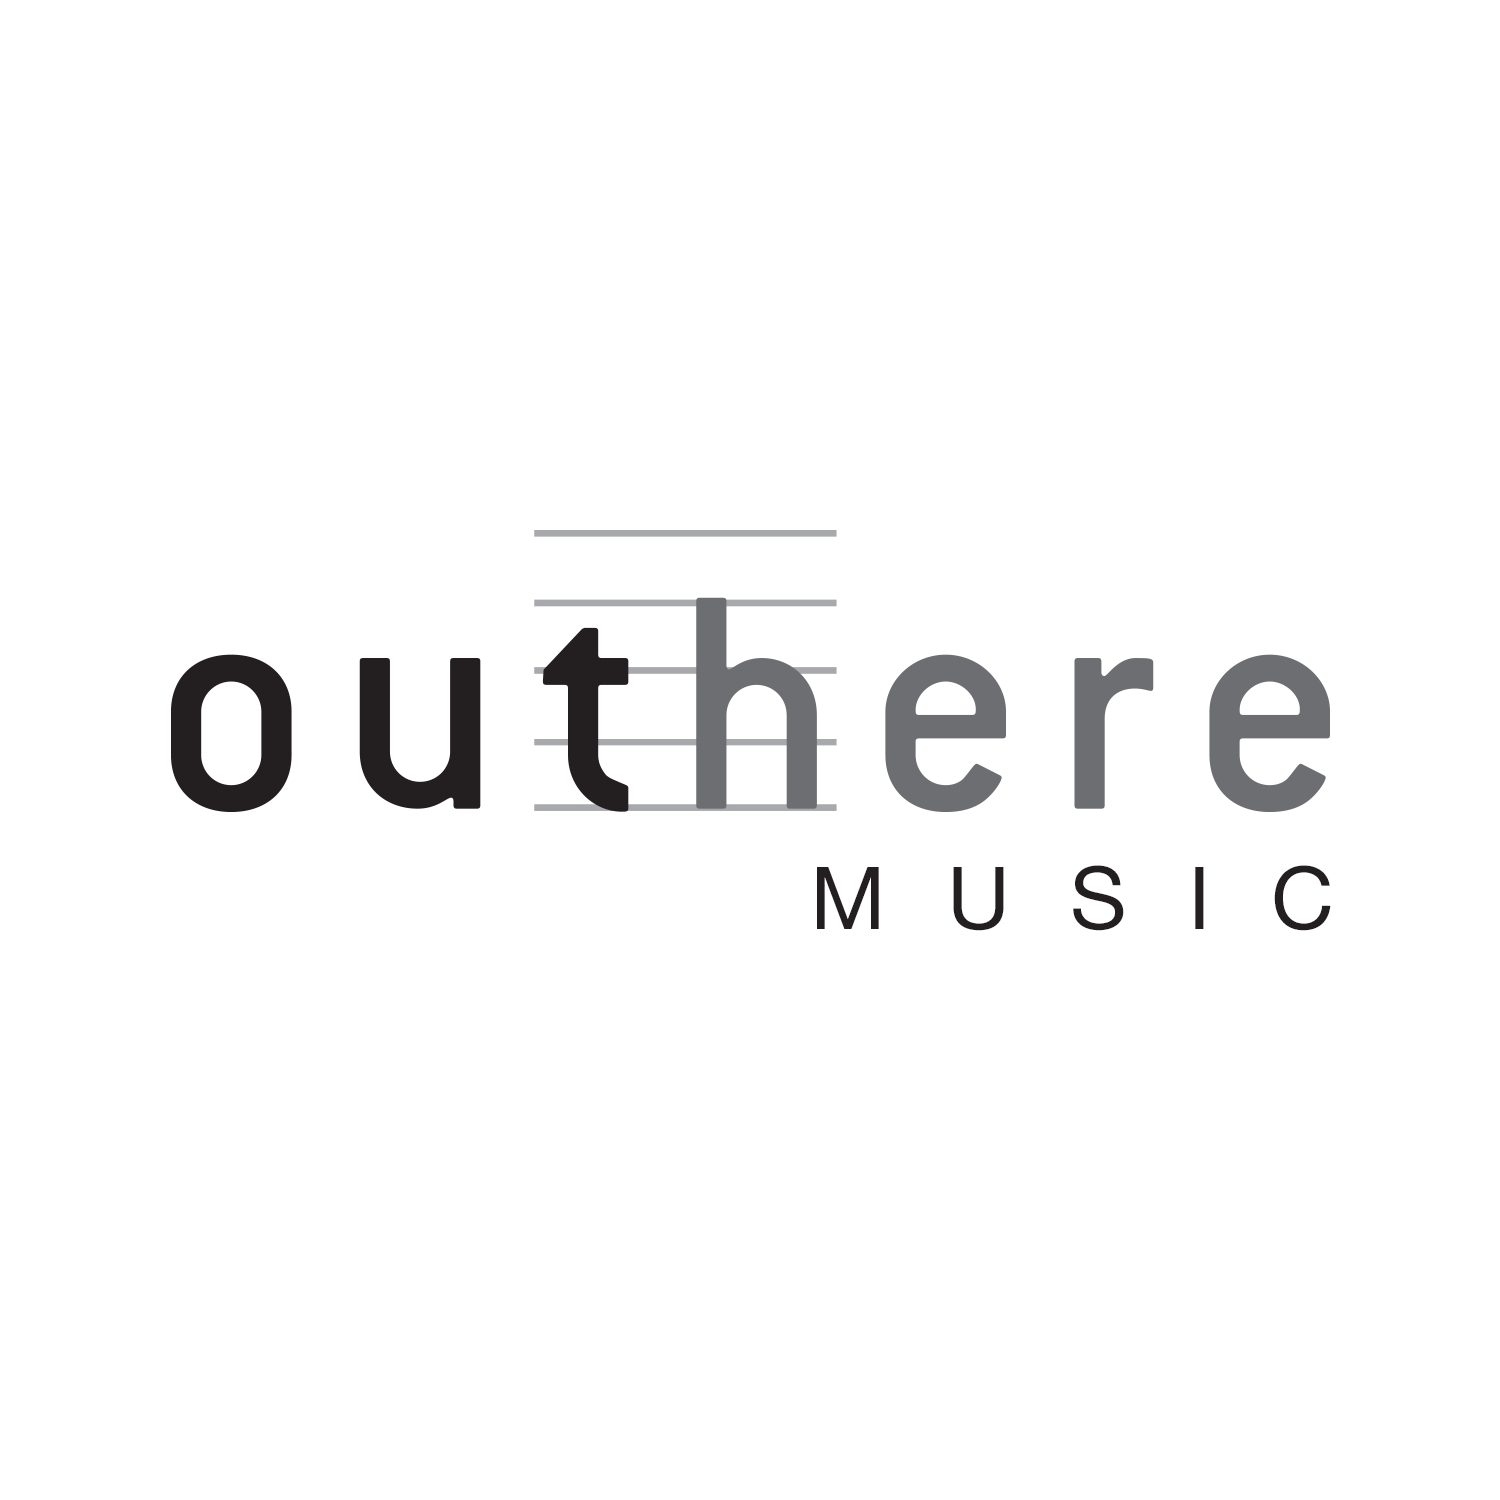 Outhere Music